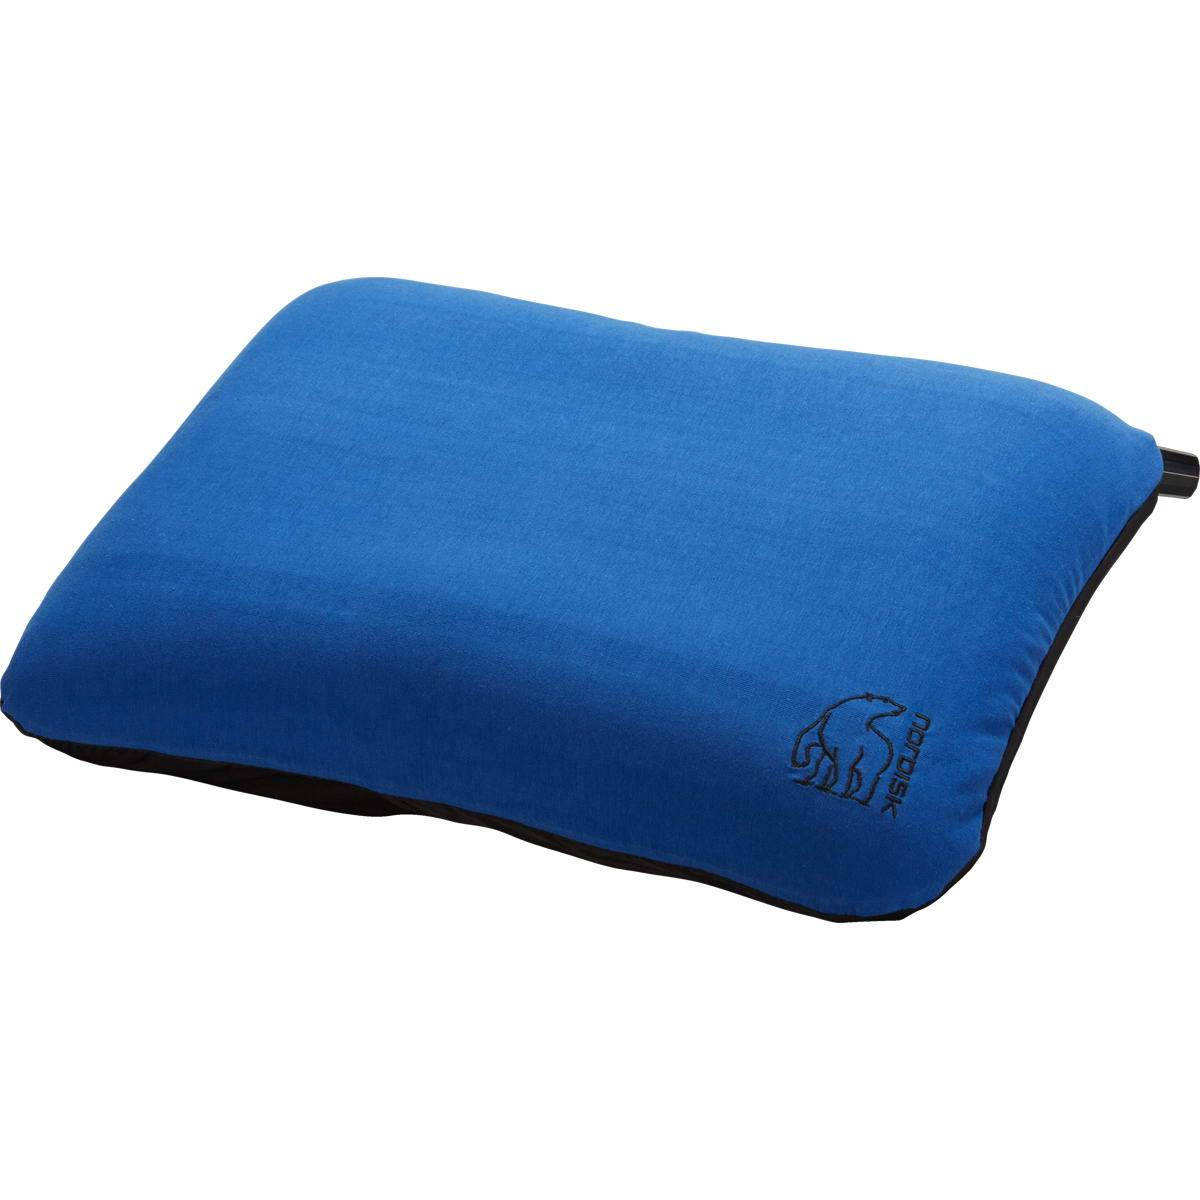 Nordisk Nat - Square Pillow - Kissen limoges blue-black - Bild 1